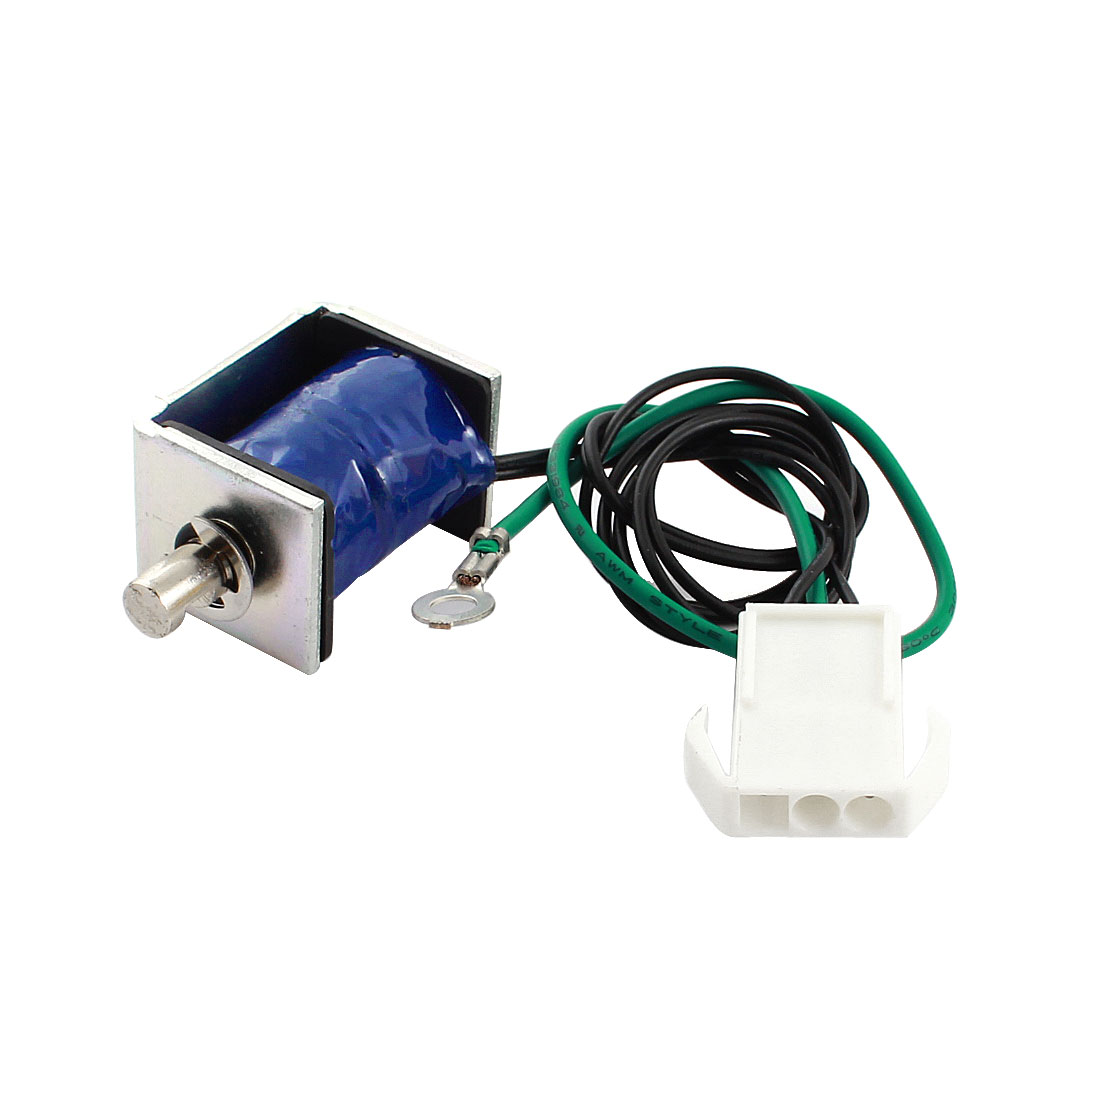 24V 1.09A 26.18W 6mm 150g 10% Open Frame Linear Motion Pull Type DC Solenoid Electromagnet Actuator w Male Connector